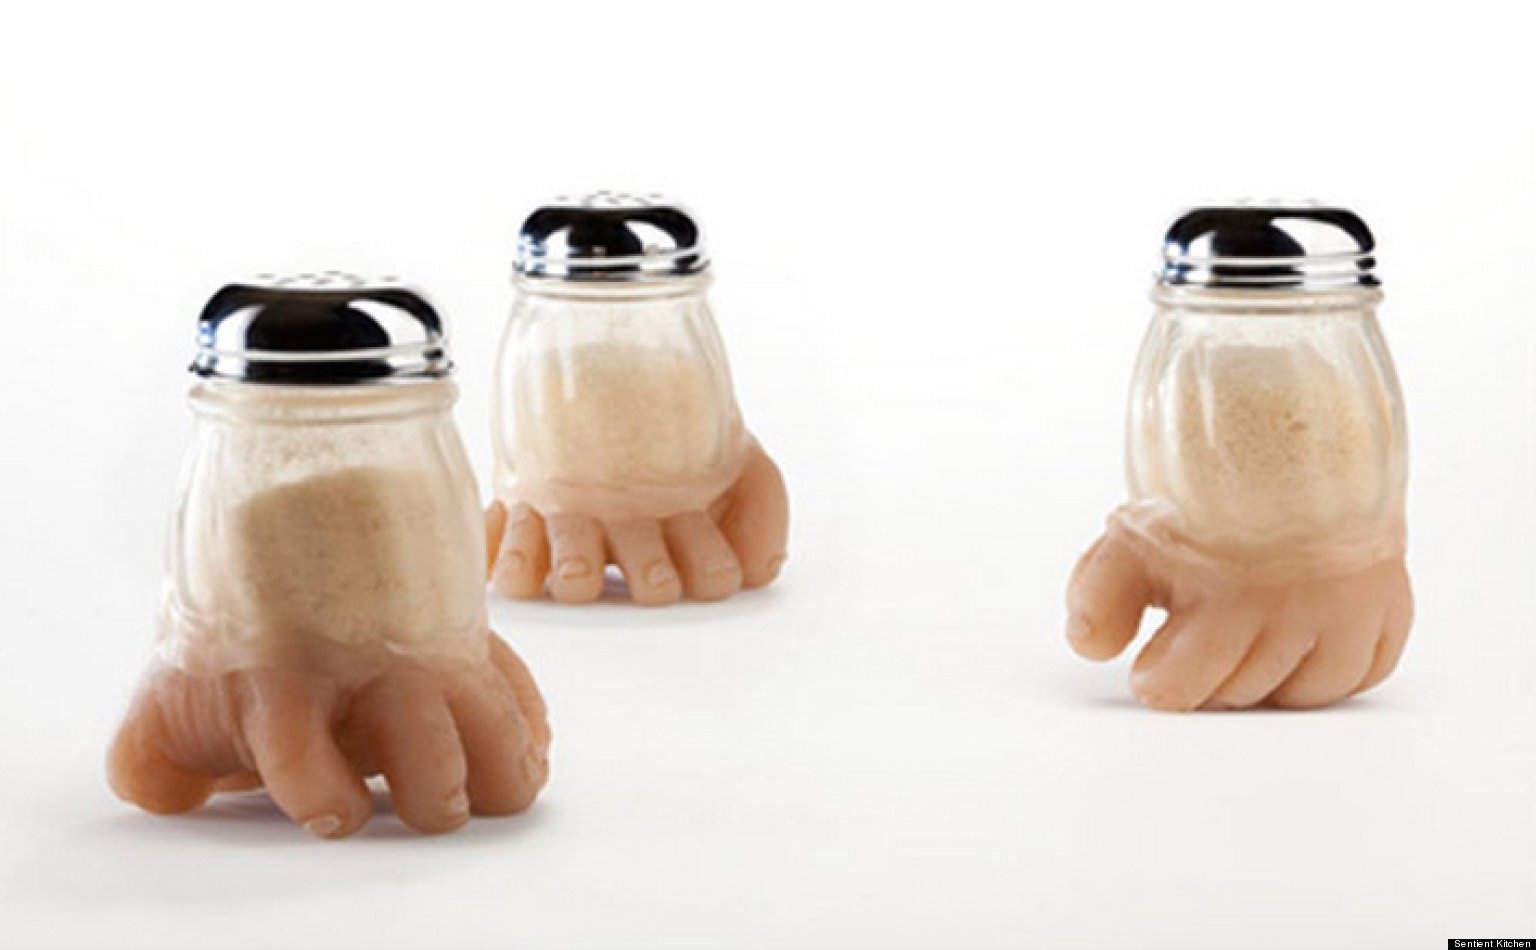 Kitchen Accessories Anatomical Kitchen Accessories Will Gross You Out Photos Huffpost